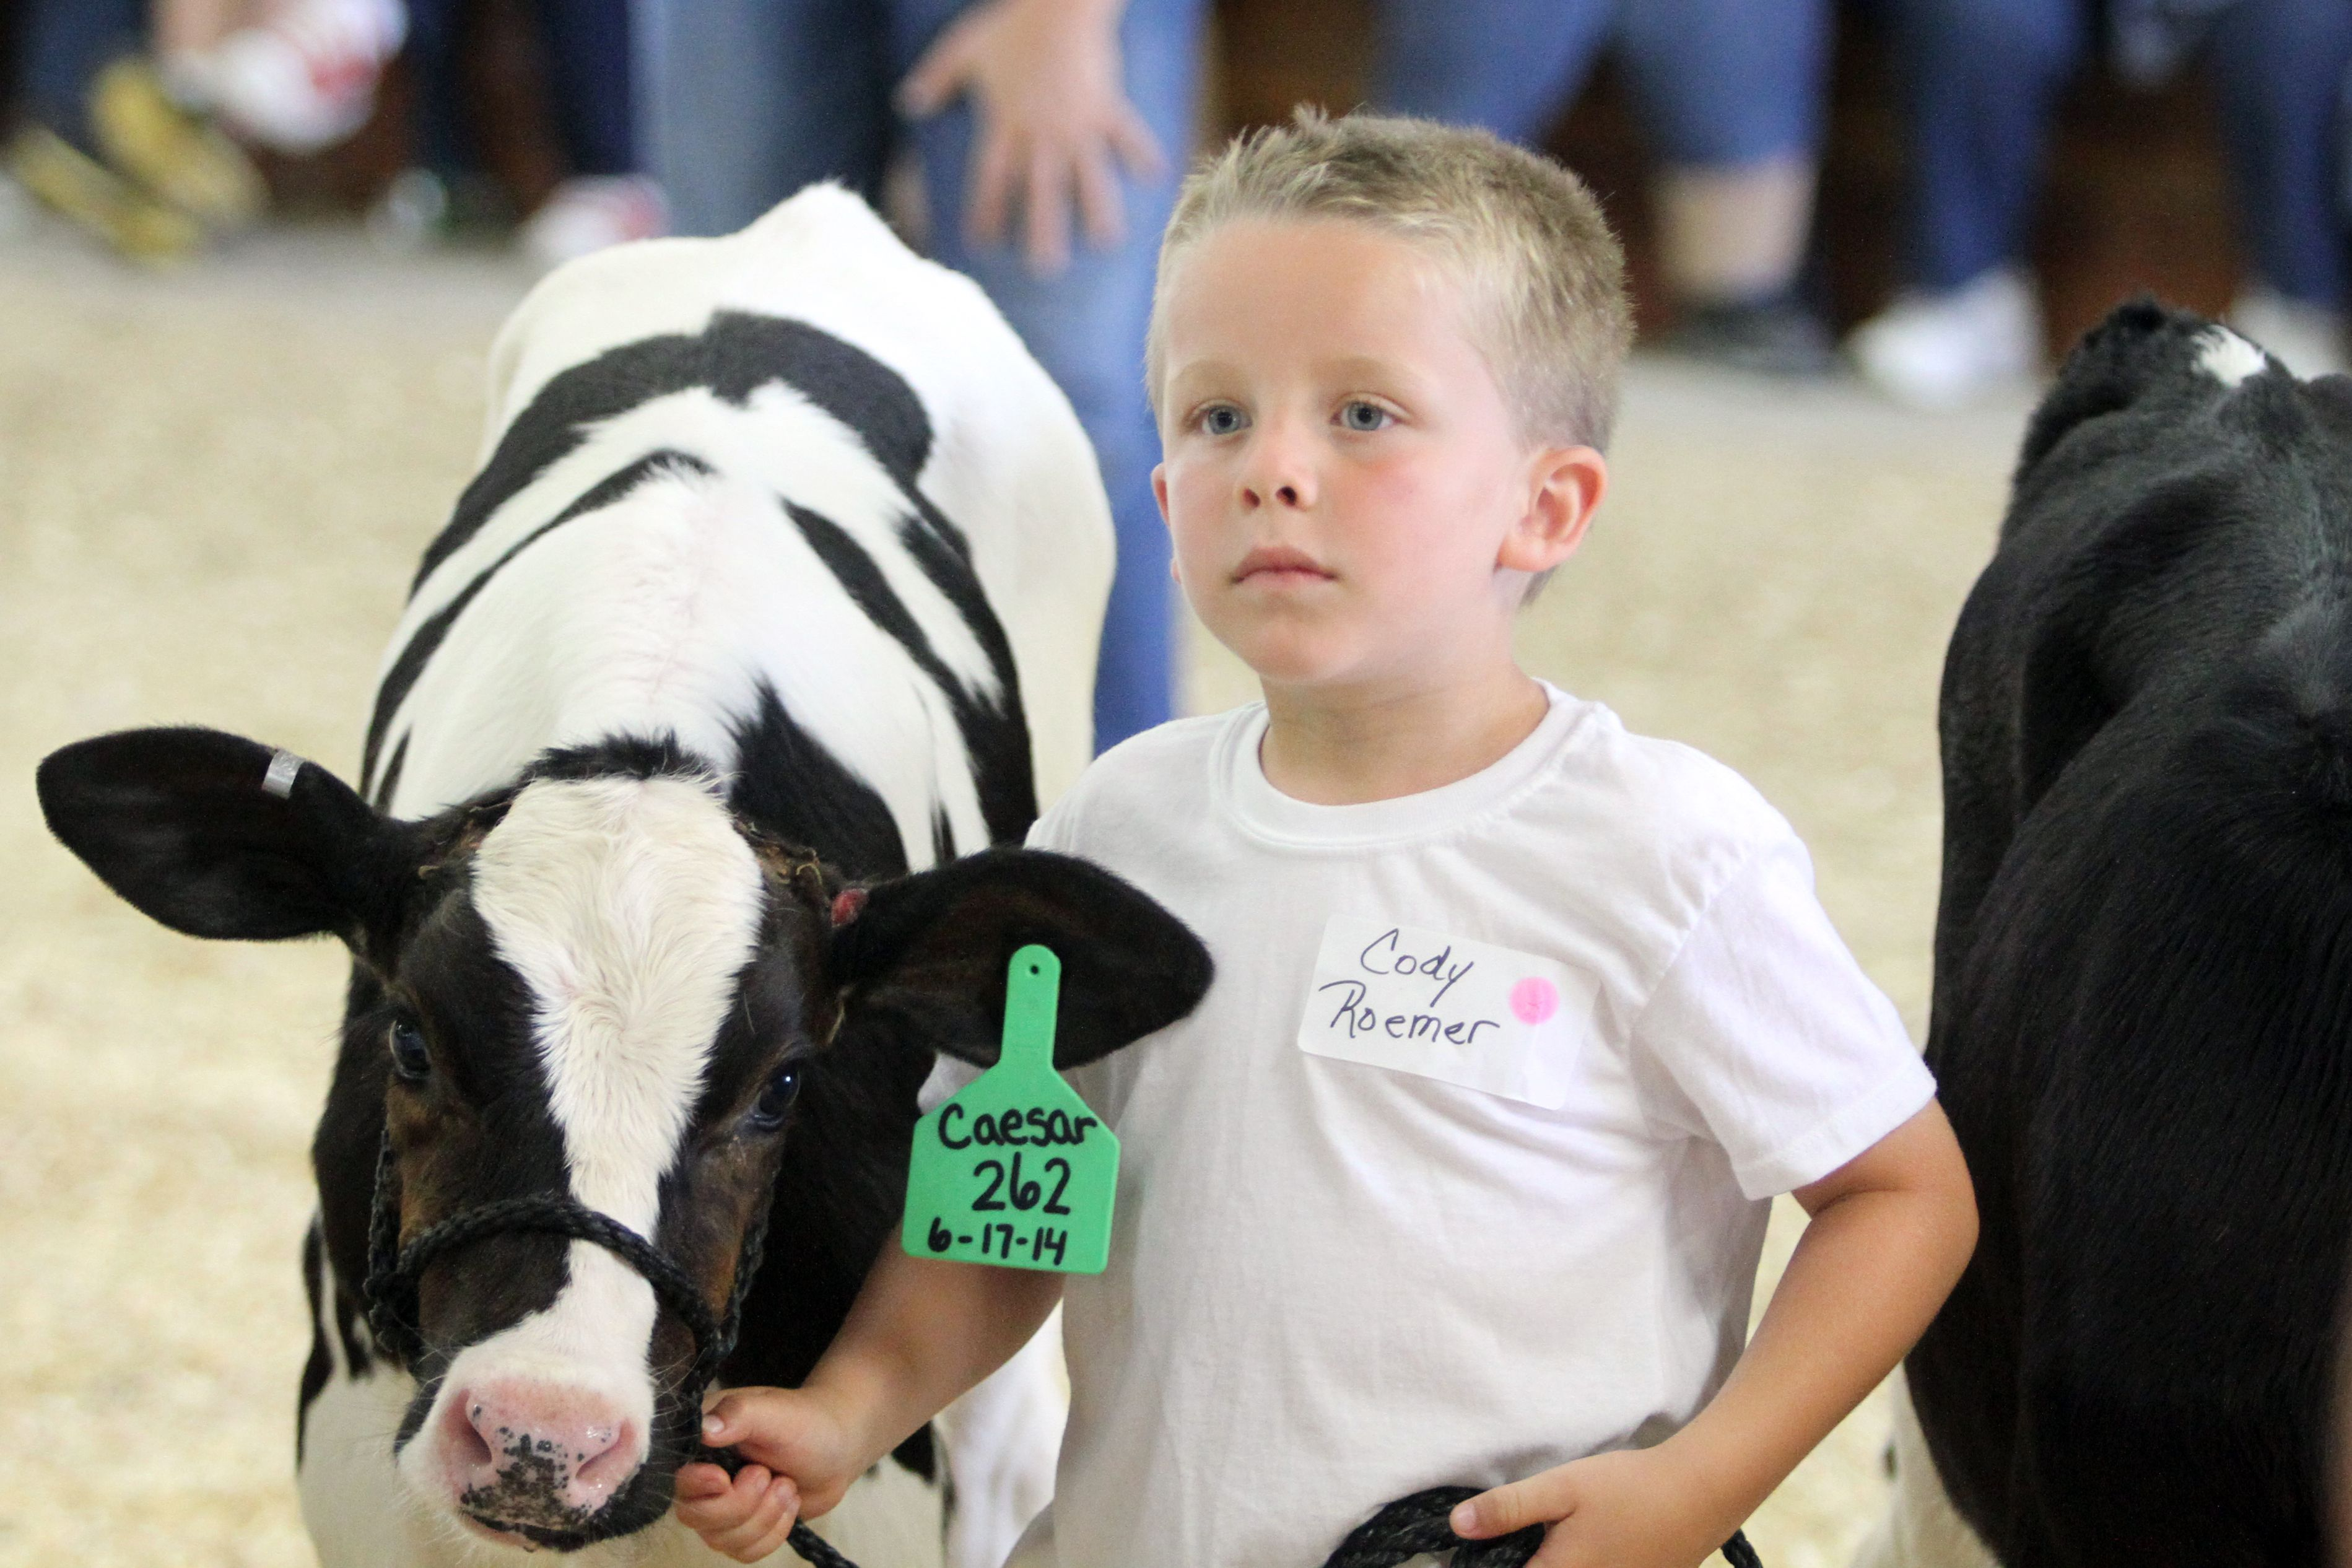 Contestants demonstrate their showmanship abilities by